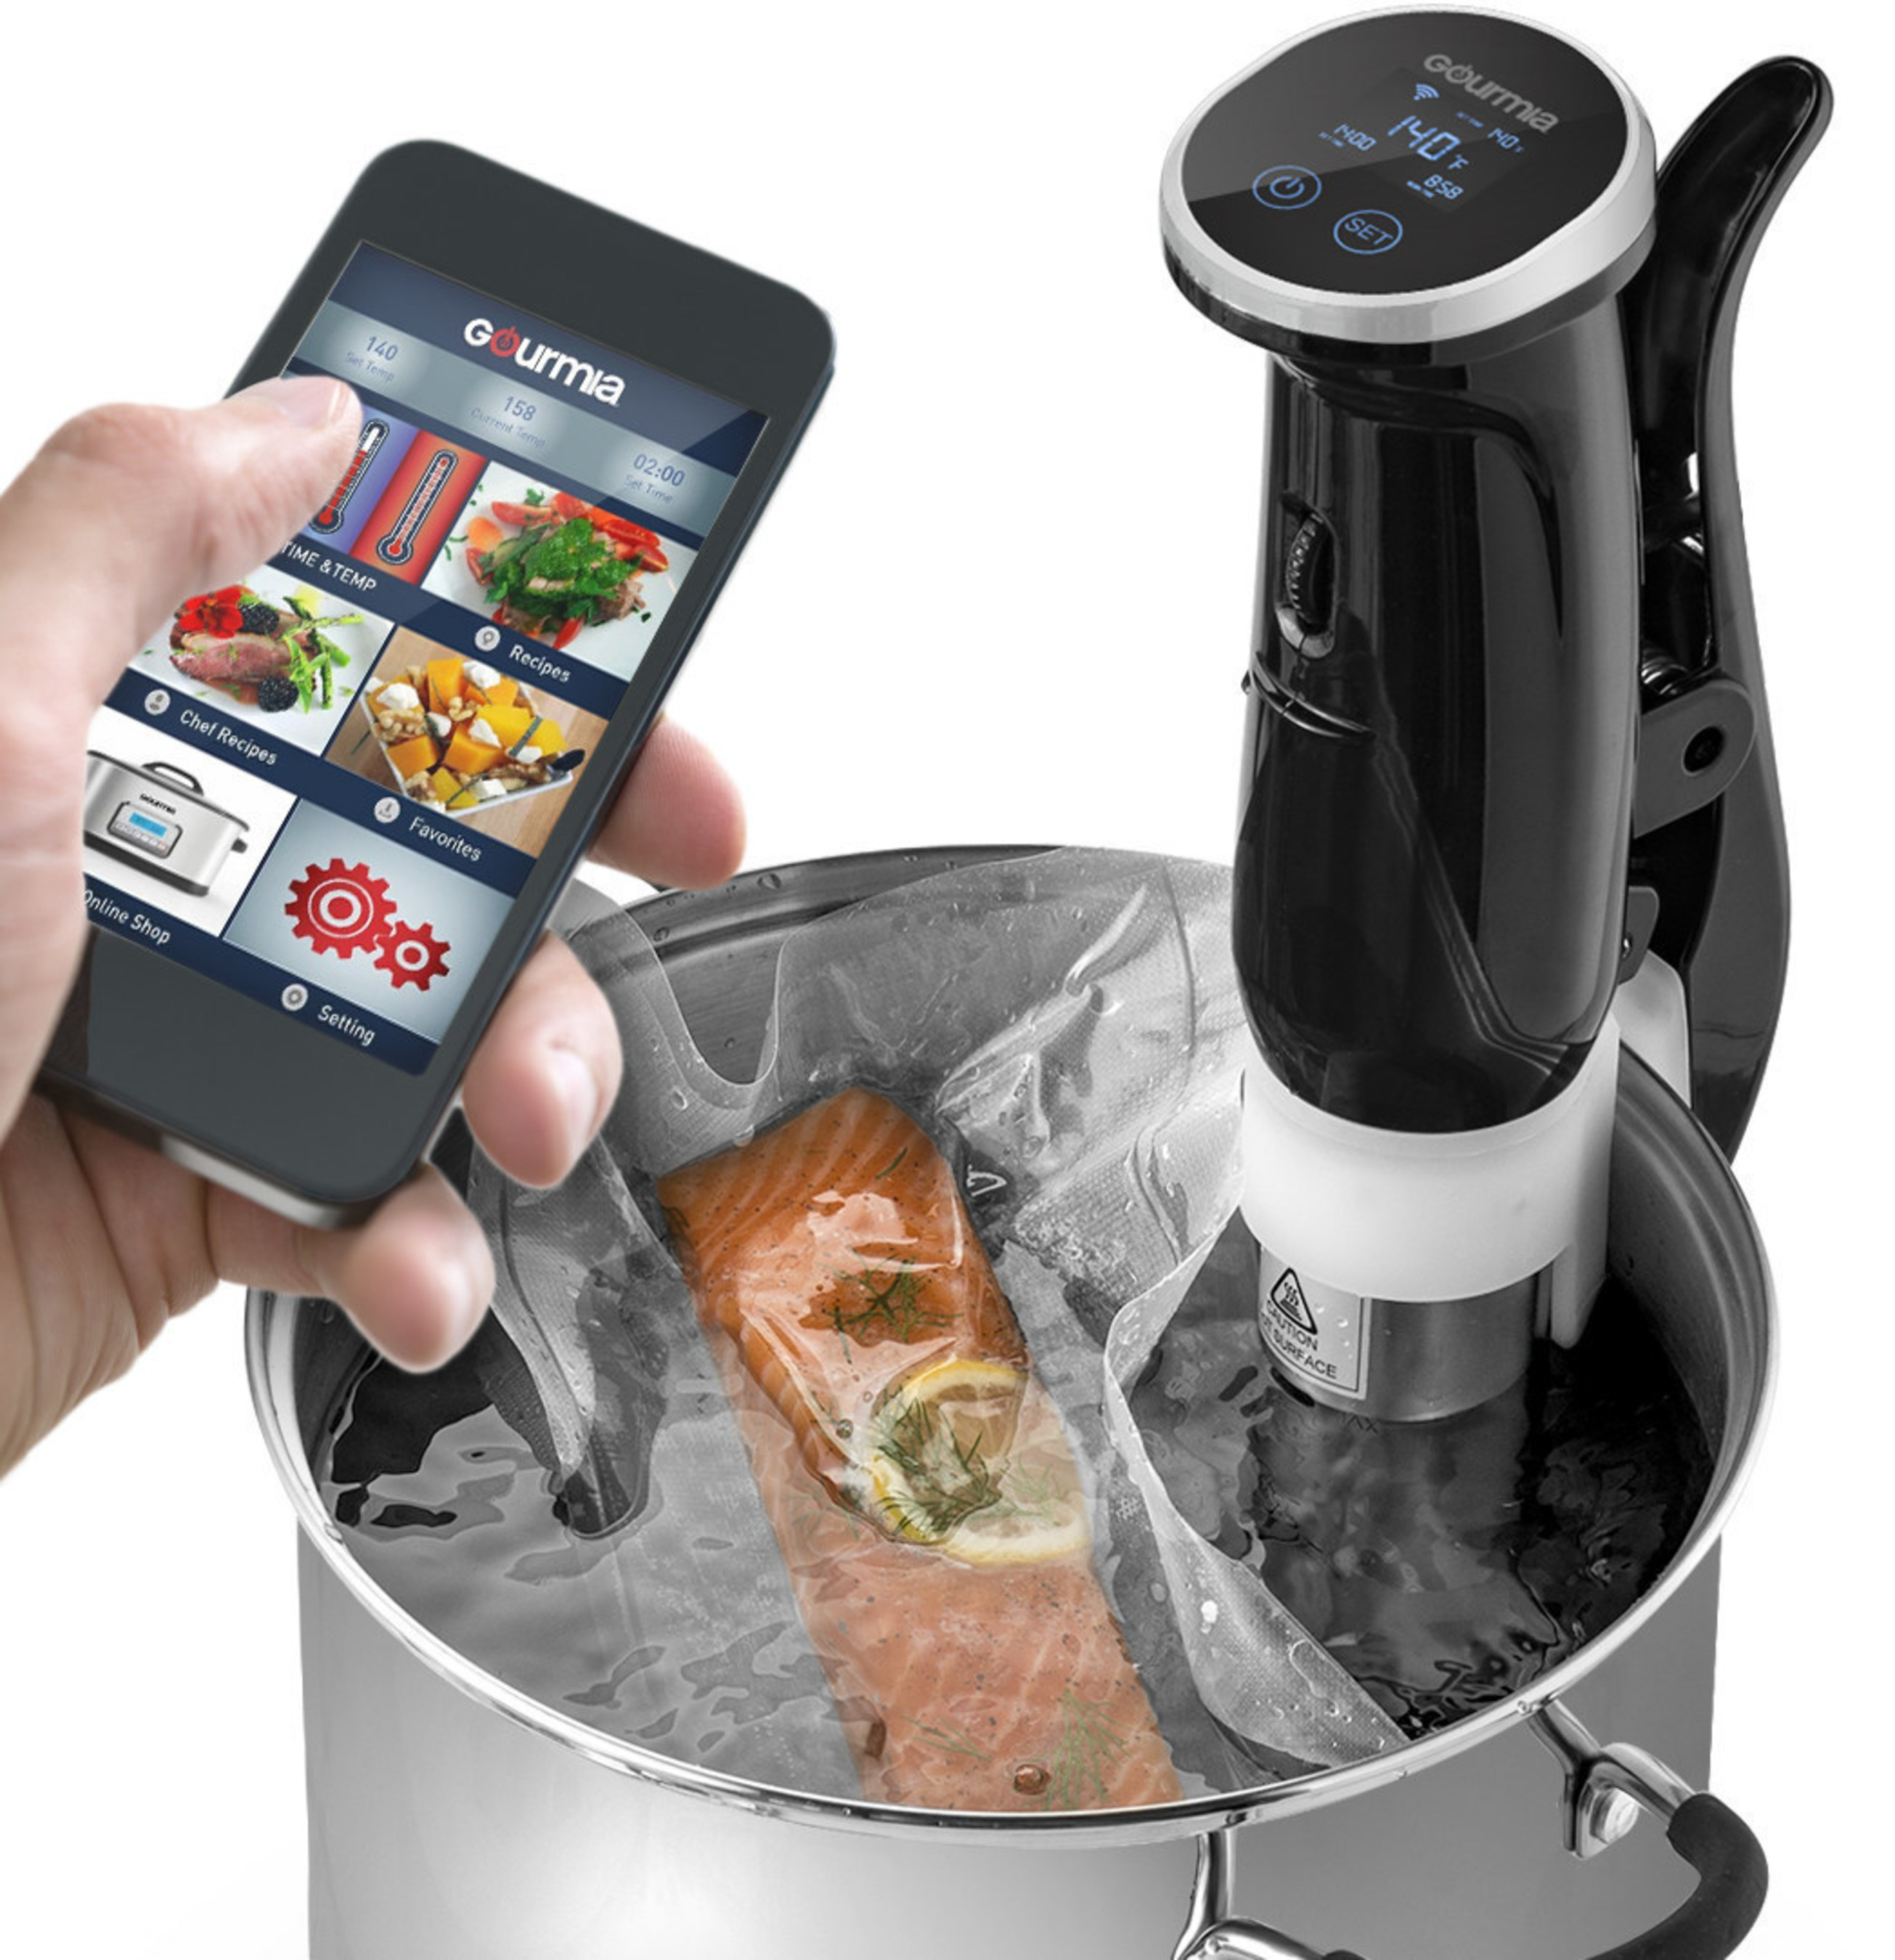 The WiFi and IoT enabled Sous Vide Pod with corresponding app from Gourmia.